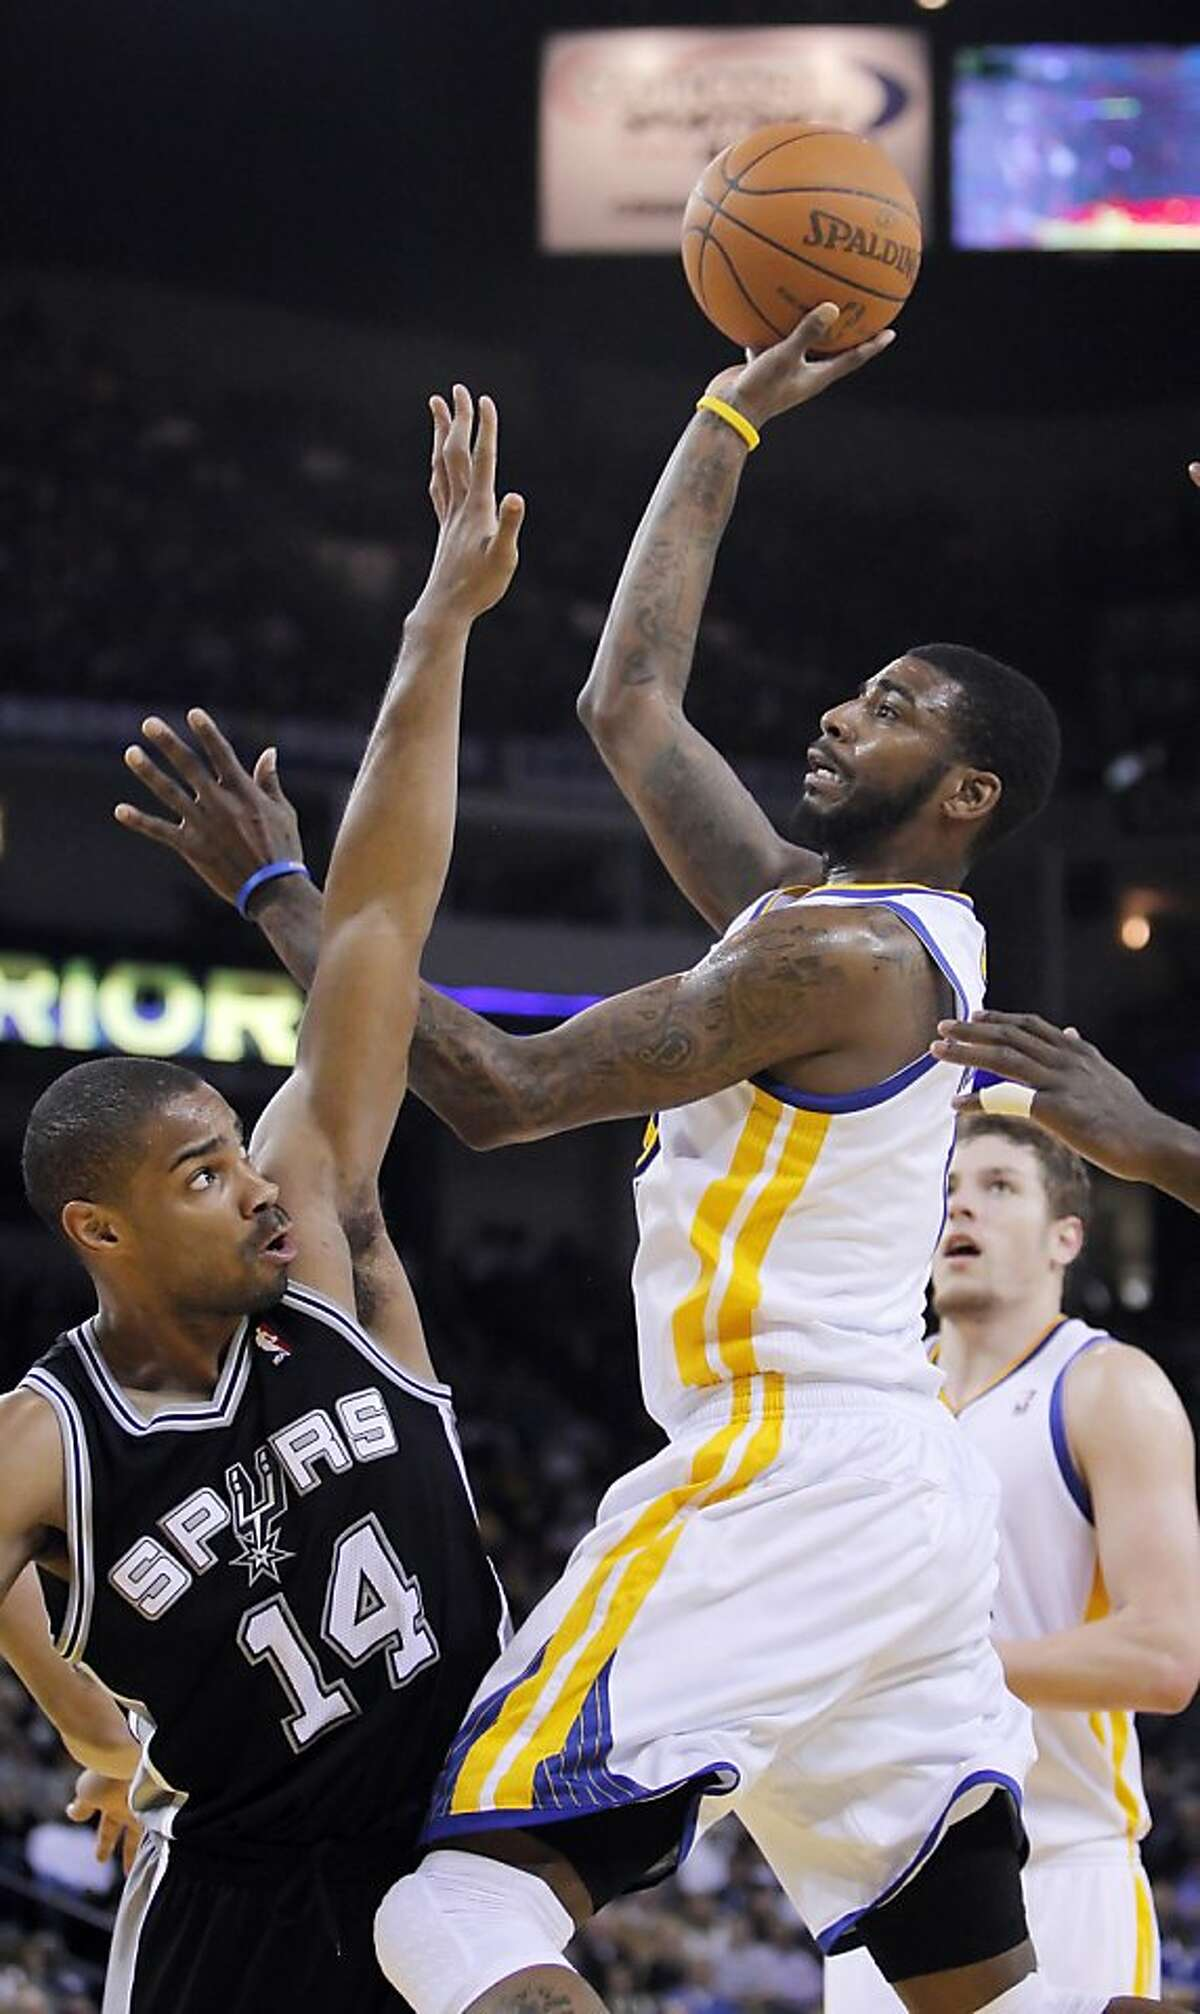 The Warriors' Dorell Wright puts up a shot in the fourth quarter over San Antonio's Gary Neal at Oracle Arena in Oakland on Monday.